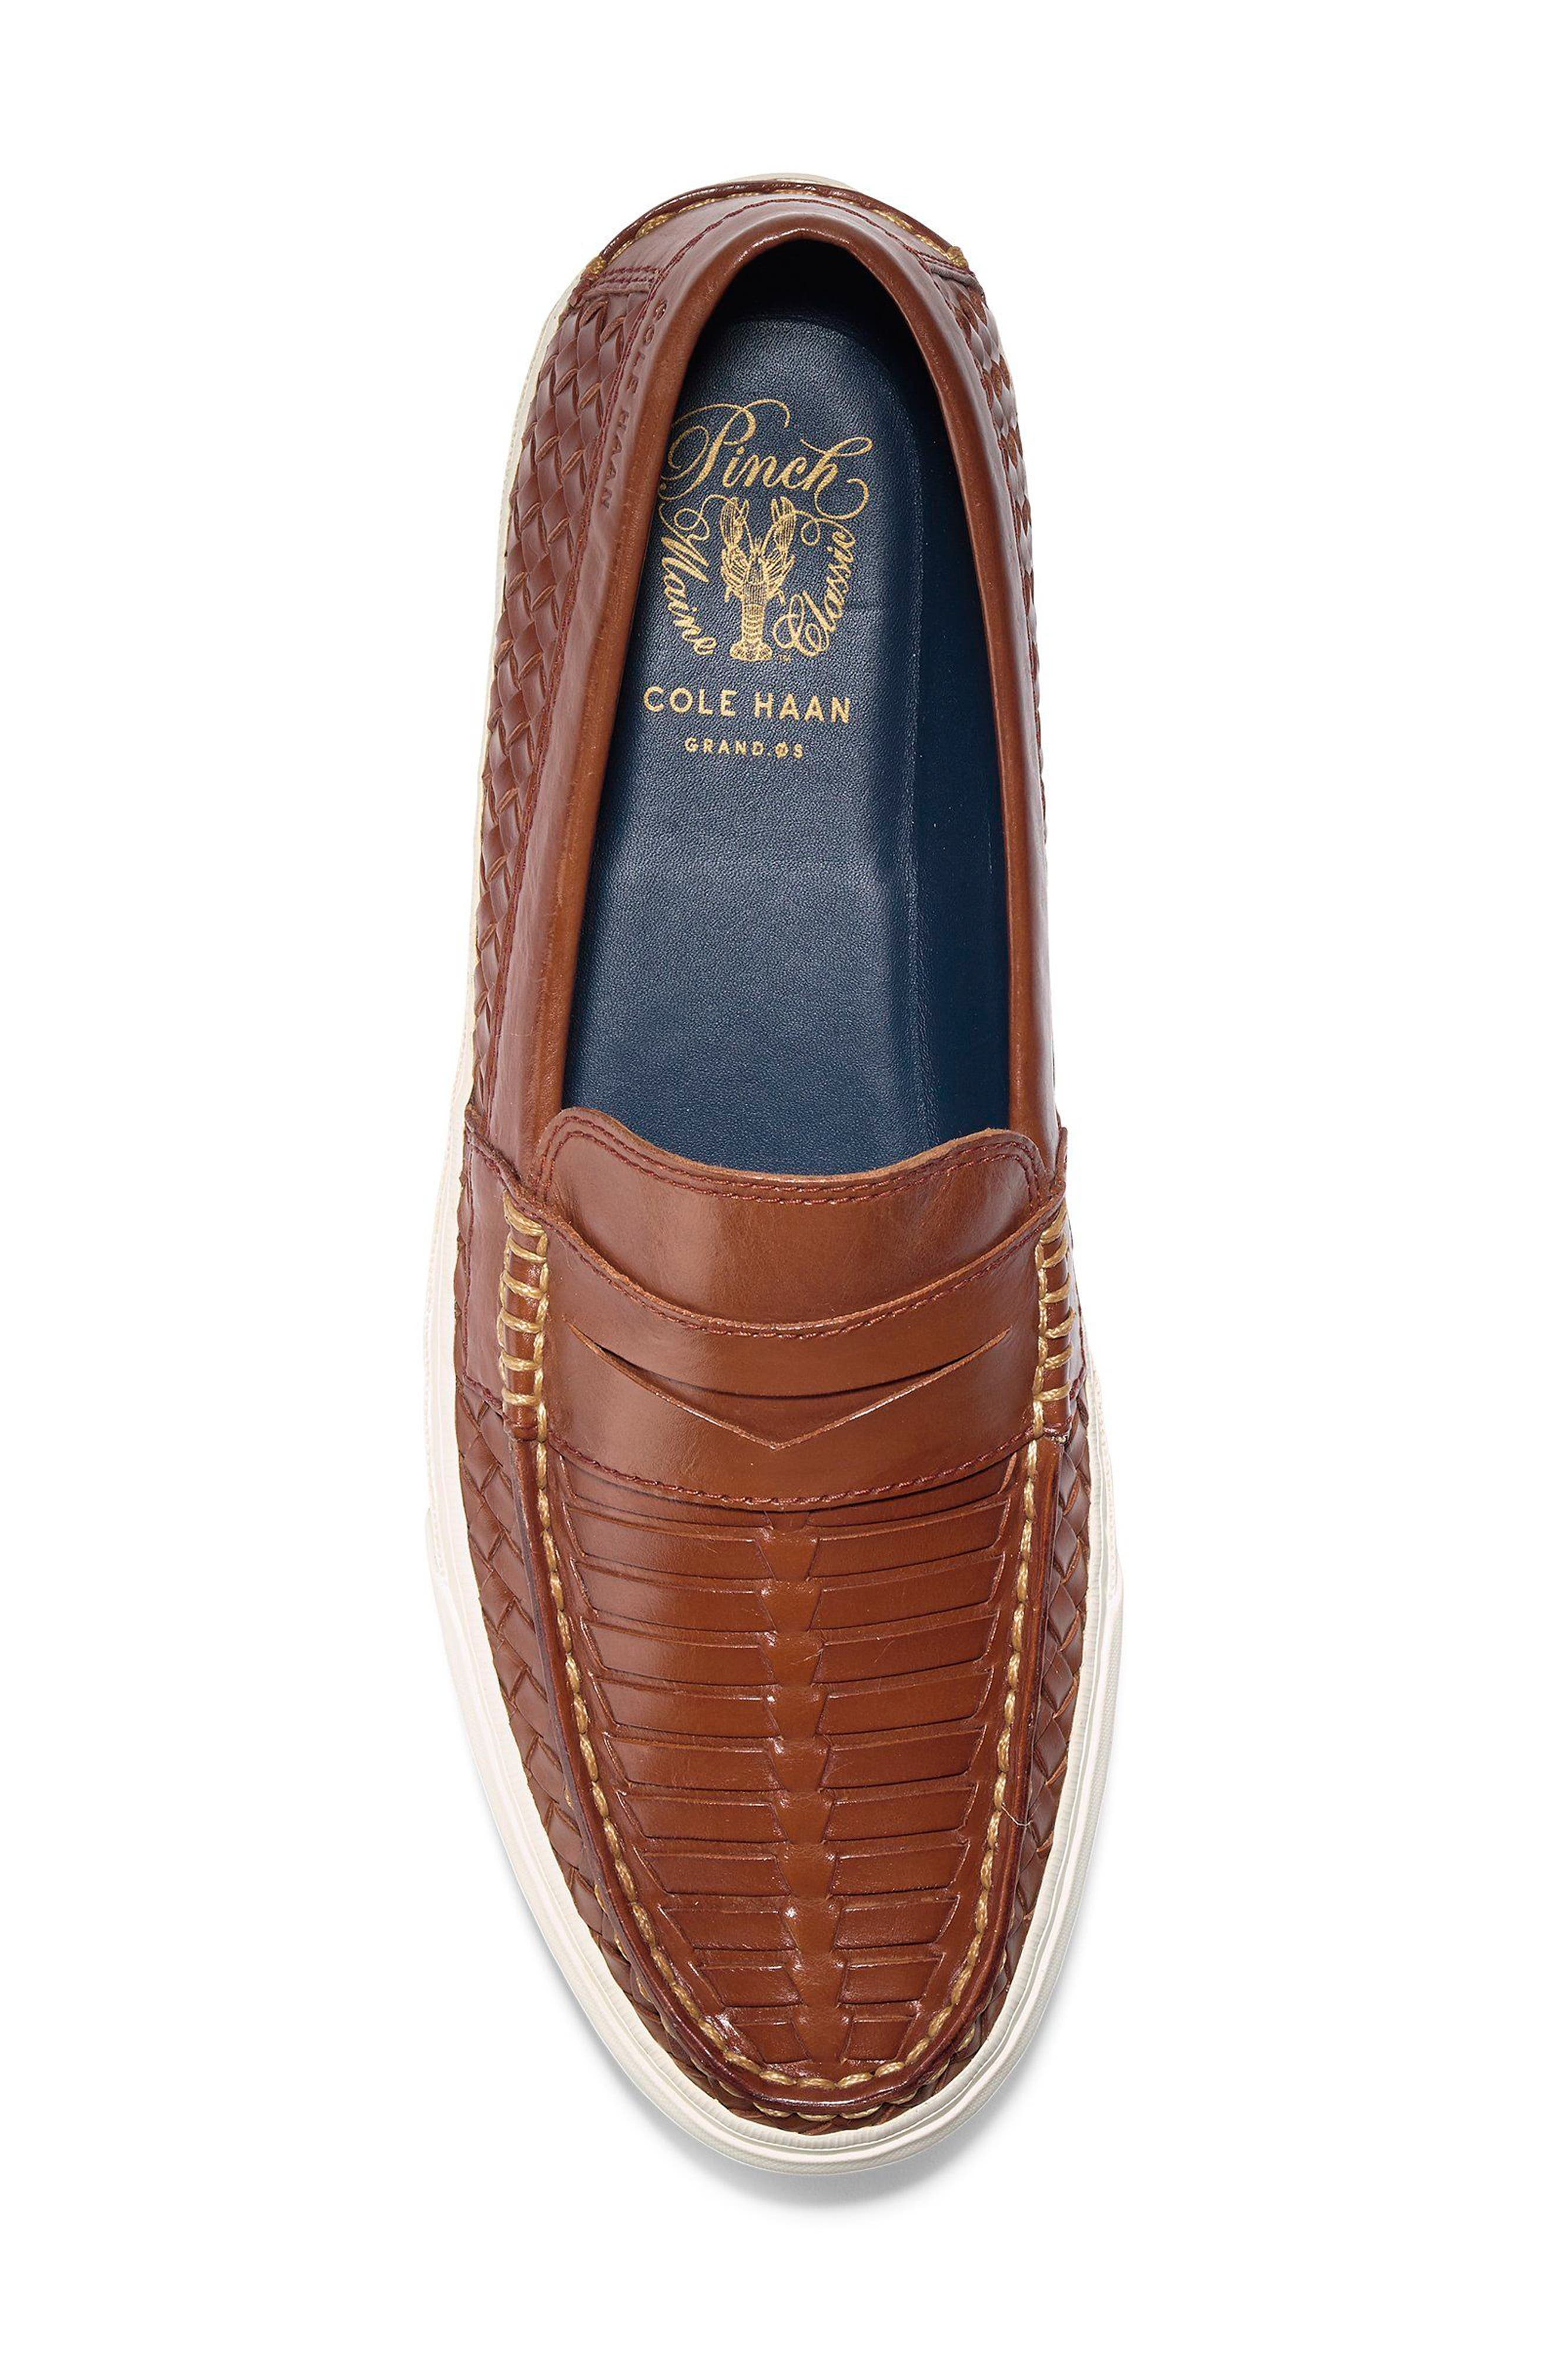 Pinch Weekend LX Huarache Loafer,                             Alternate thumbnail 5, color,                             WOODBURY WOVEN BURNISH